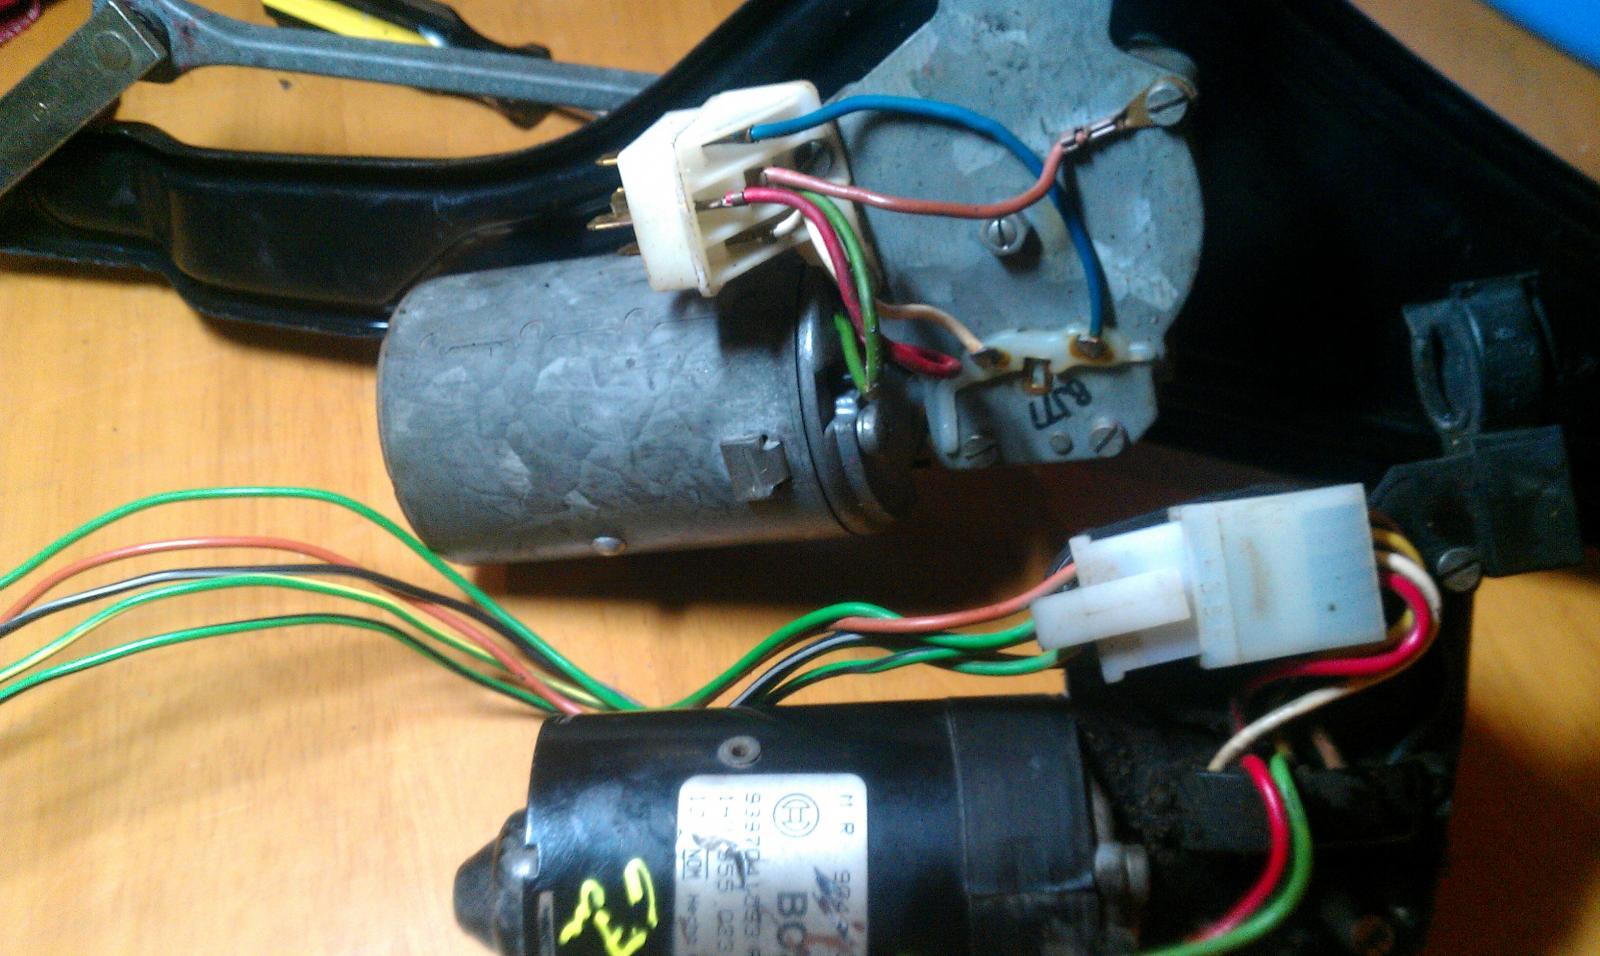 Bay Window Bus View Topic 78 Wiper Motor Help Vw Bug Wiring Image May Have Been Reduced In Size Click To Fullscreen